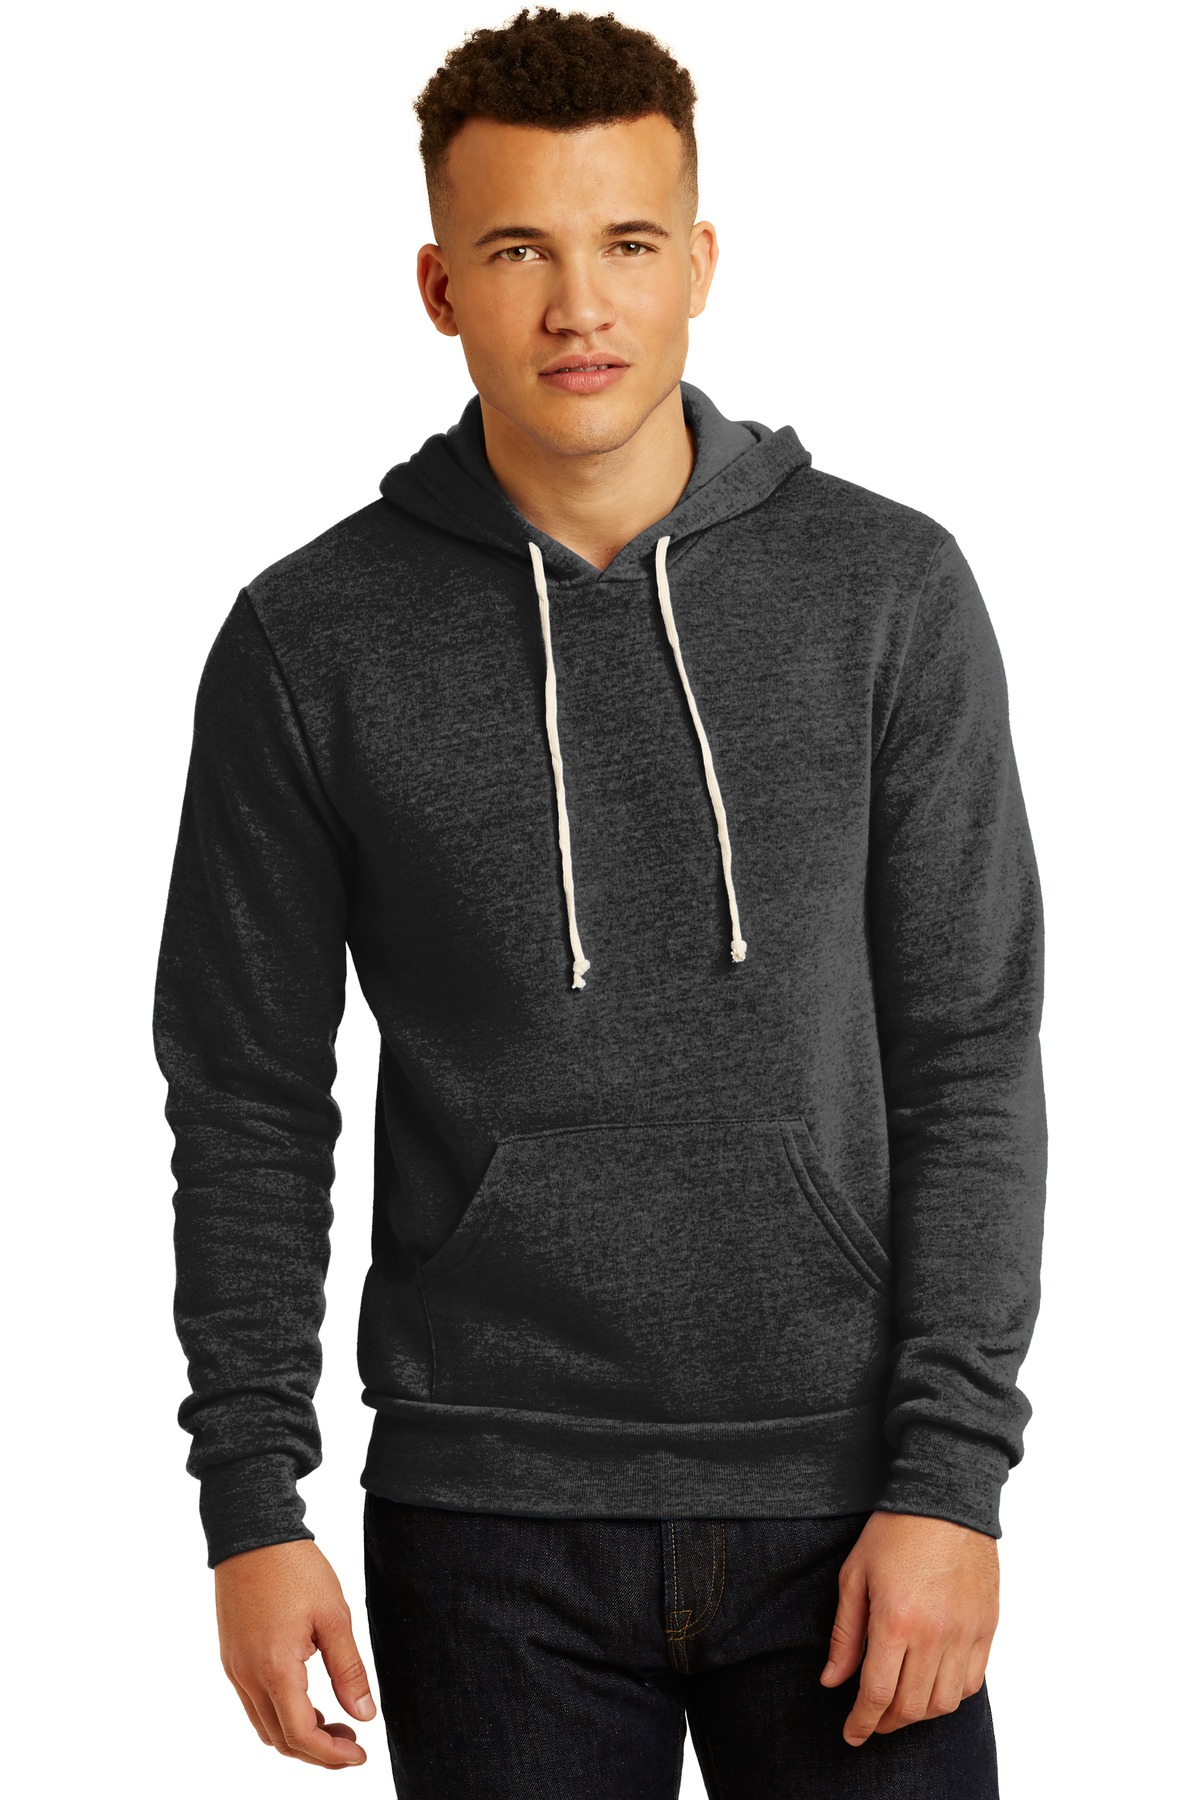 Alternative Challenger Eco ™ -Fleece Pullover Hoodie. AA9595 - Eco Black